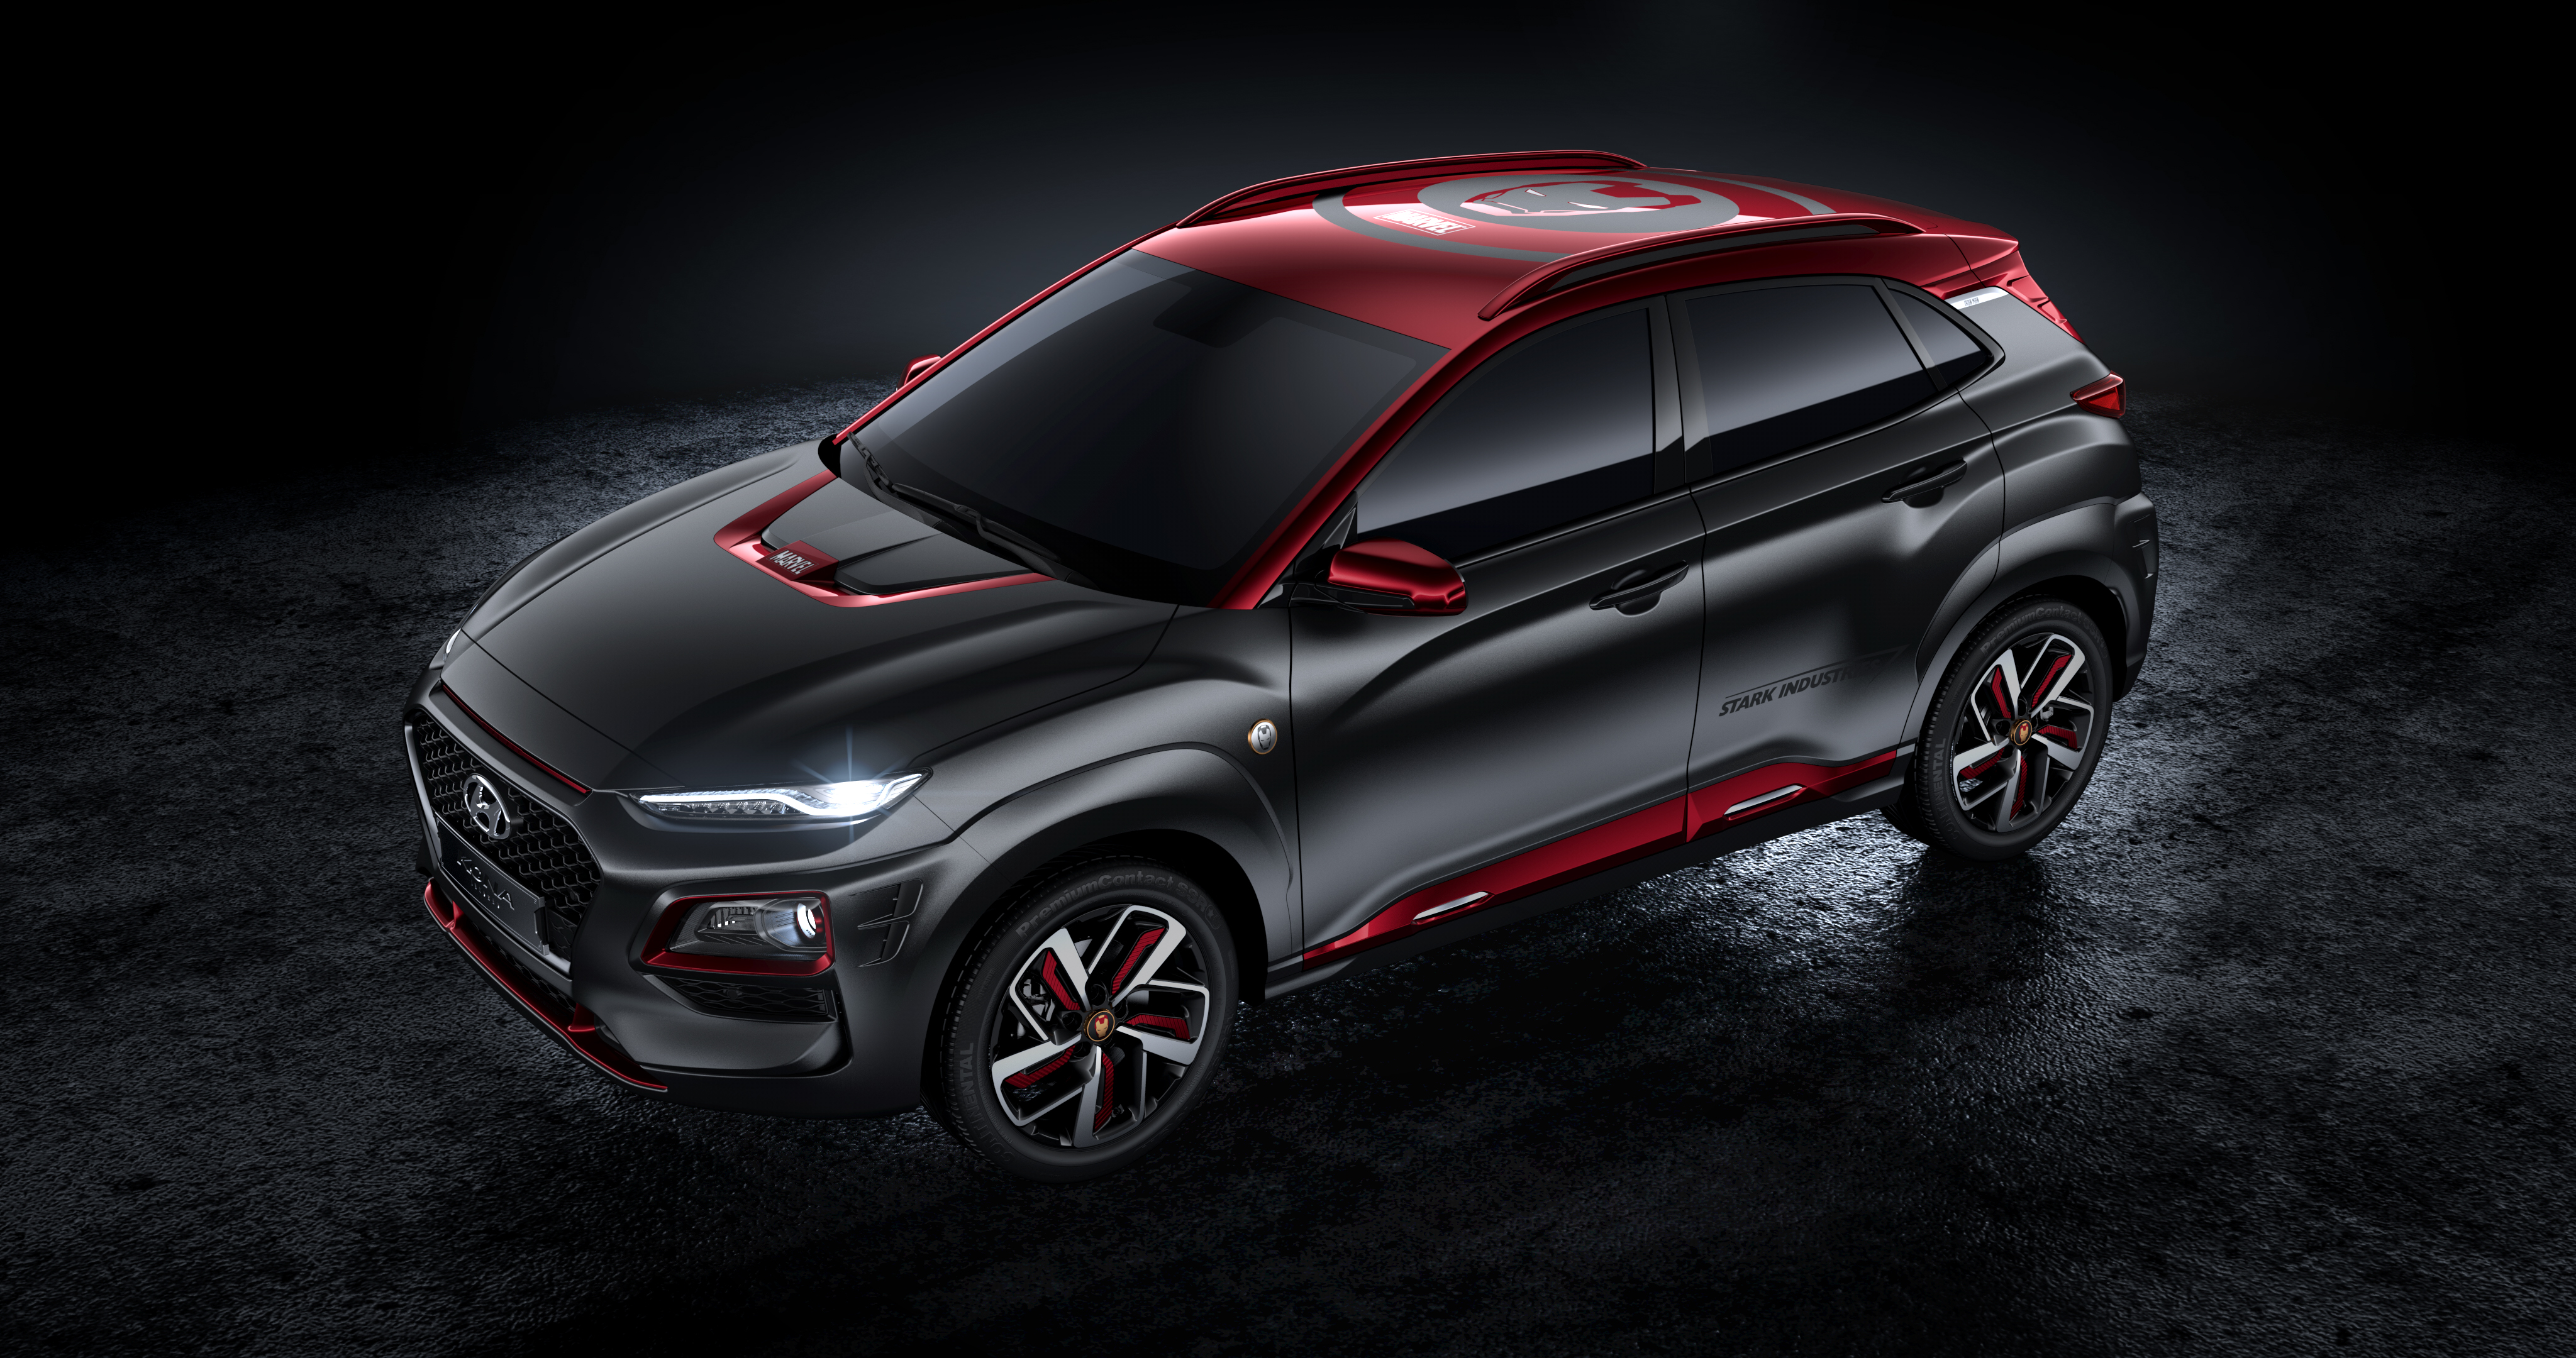 Hyundai Kona Iron Man Edition to be Released this Month